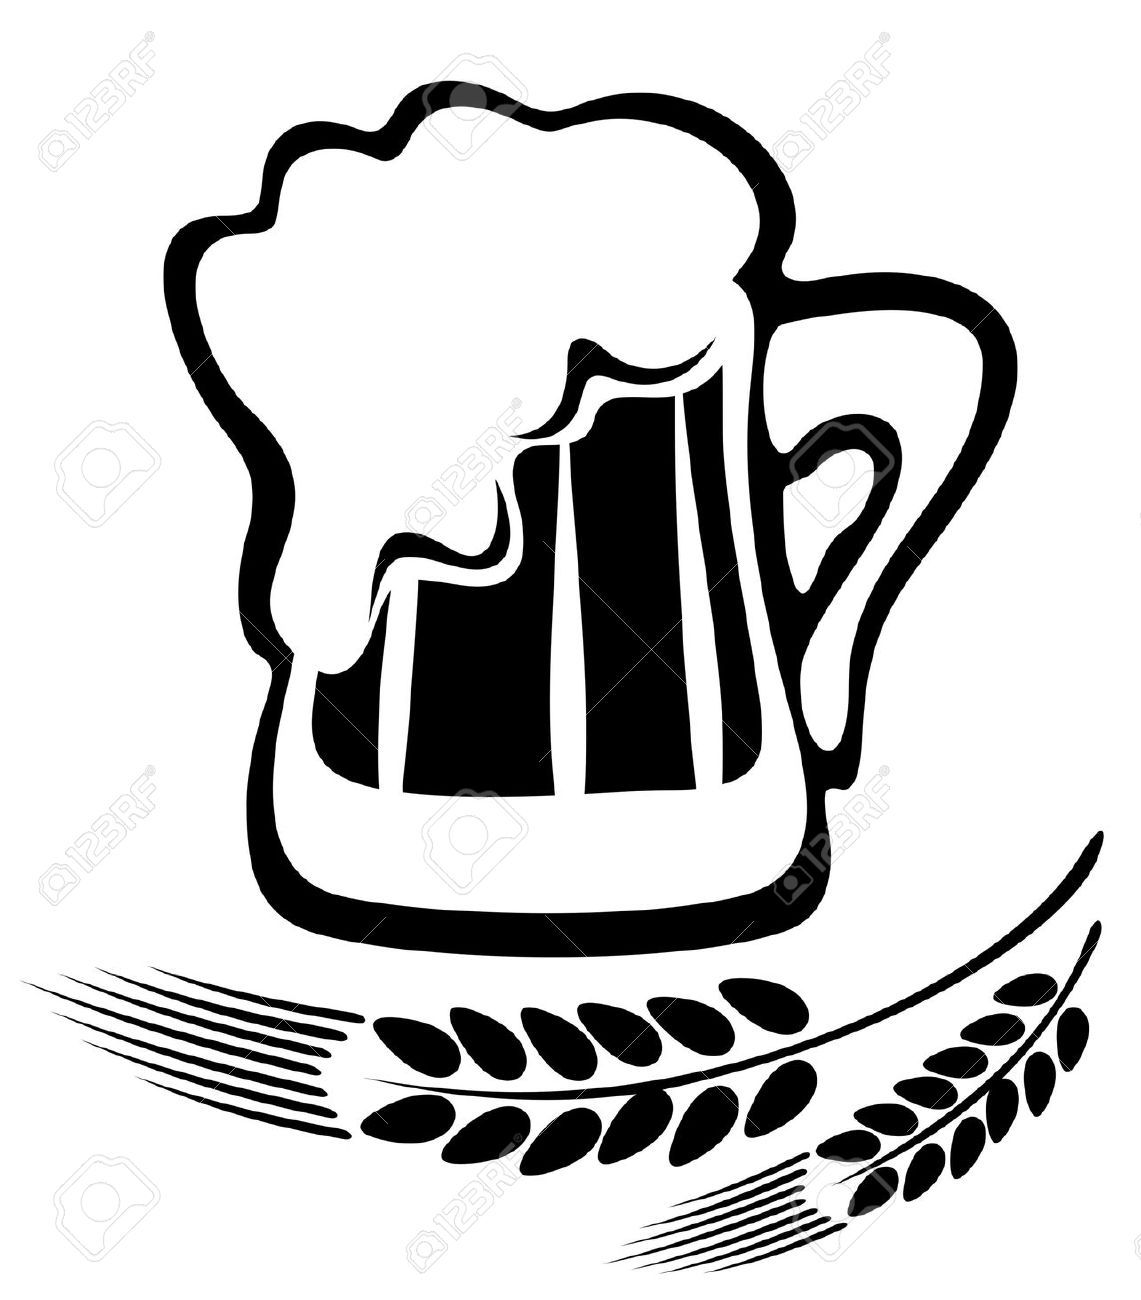 Beer Mugs Clipart Black And White images.